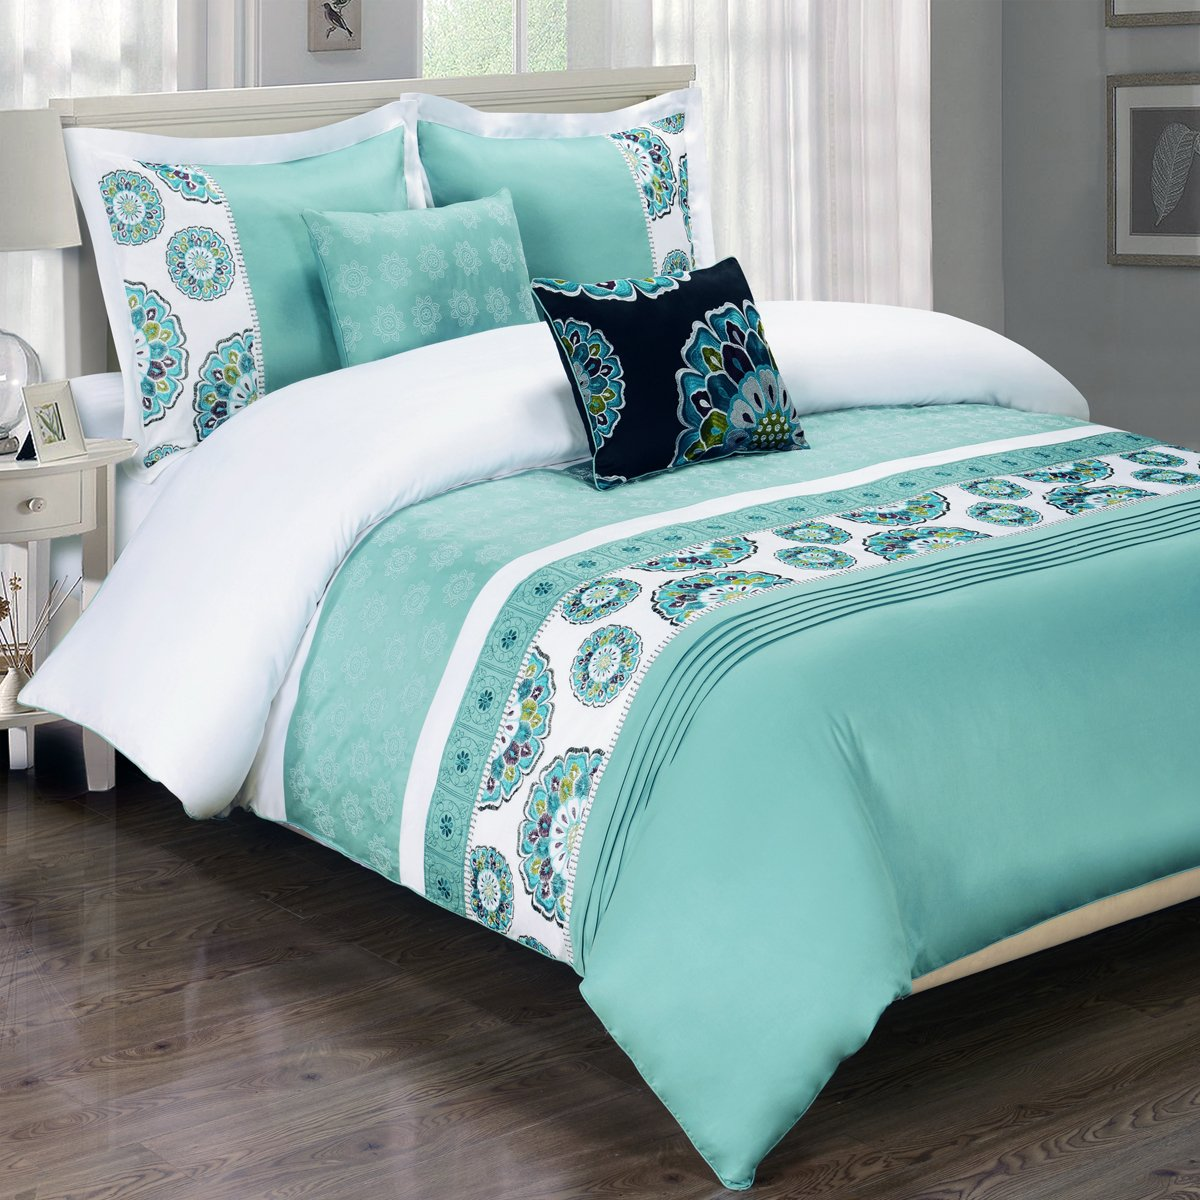 Queen Size Comforter Set, Aqua Blue and white